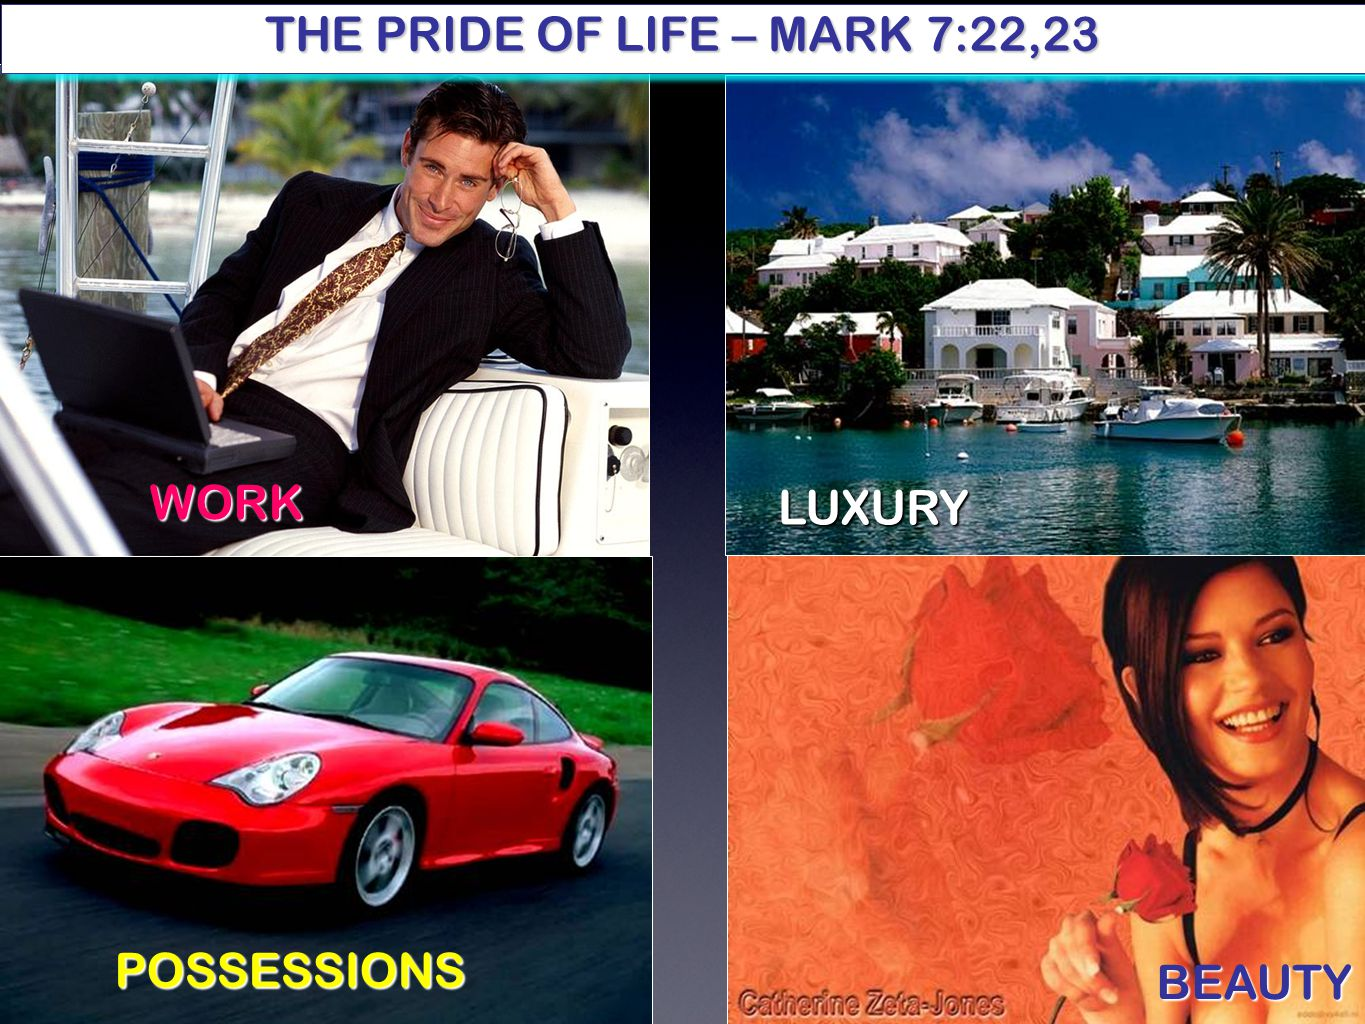 THE PRIDE OF LIFE – MARK 7:22,23 BEAUTY LUXURY WORK POSSESSIONS